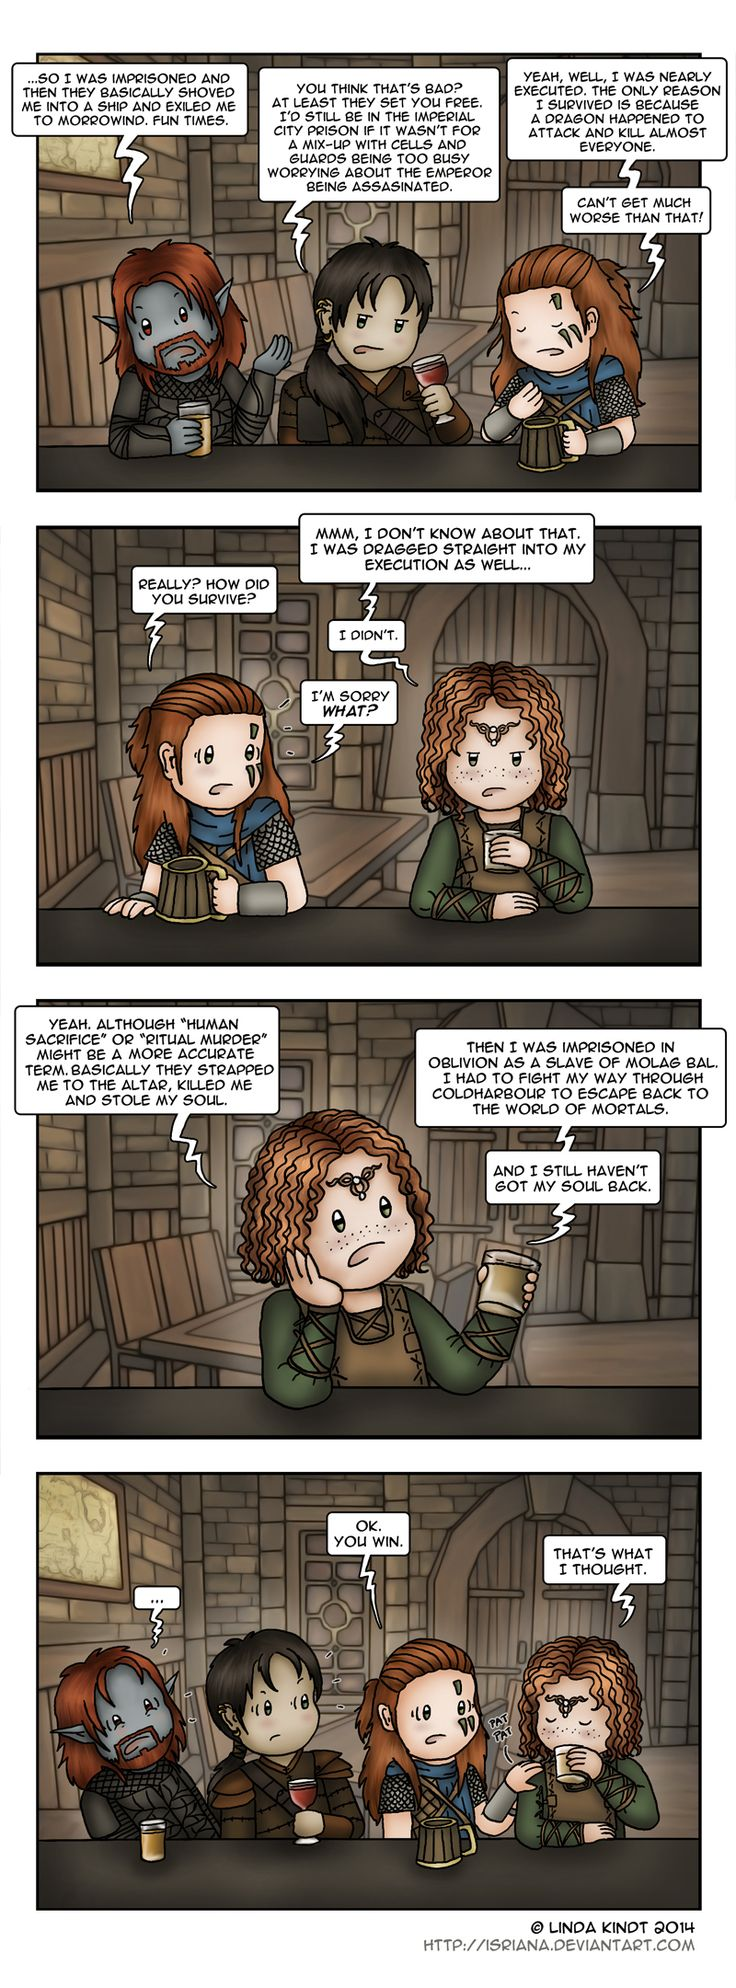 TESO: Keeps Getting Worse by Isriana on DeviantArt